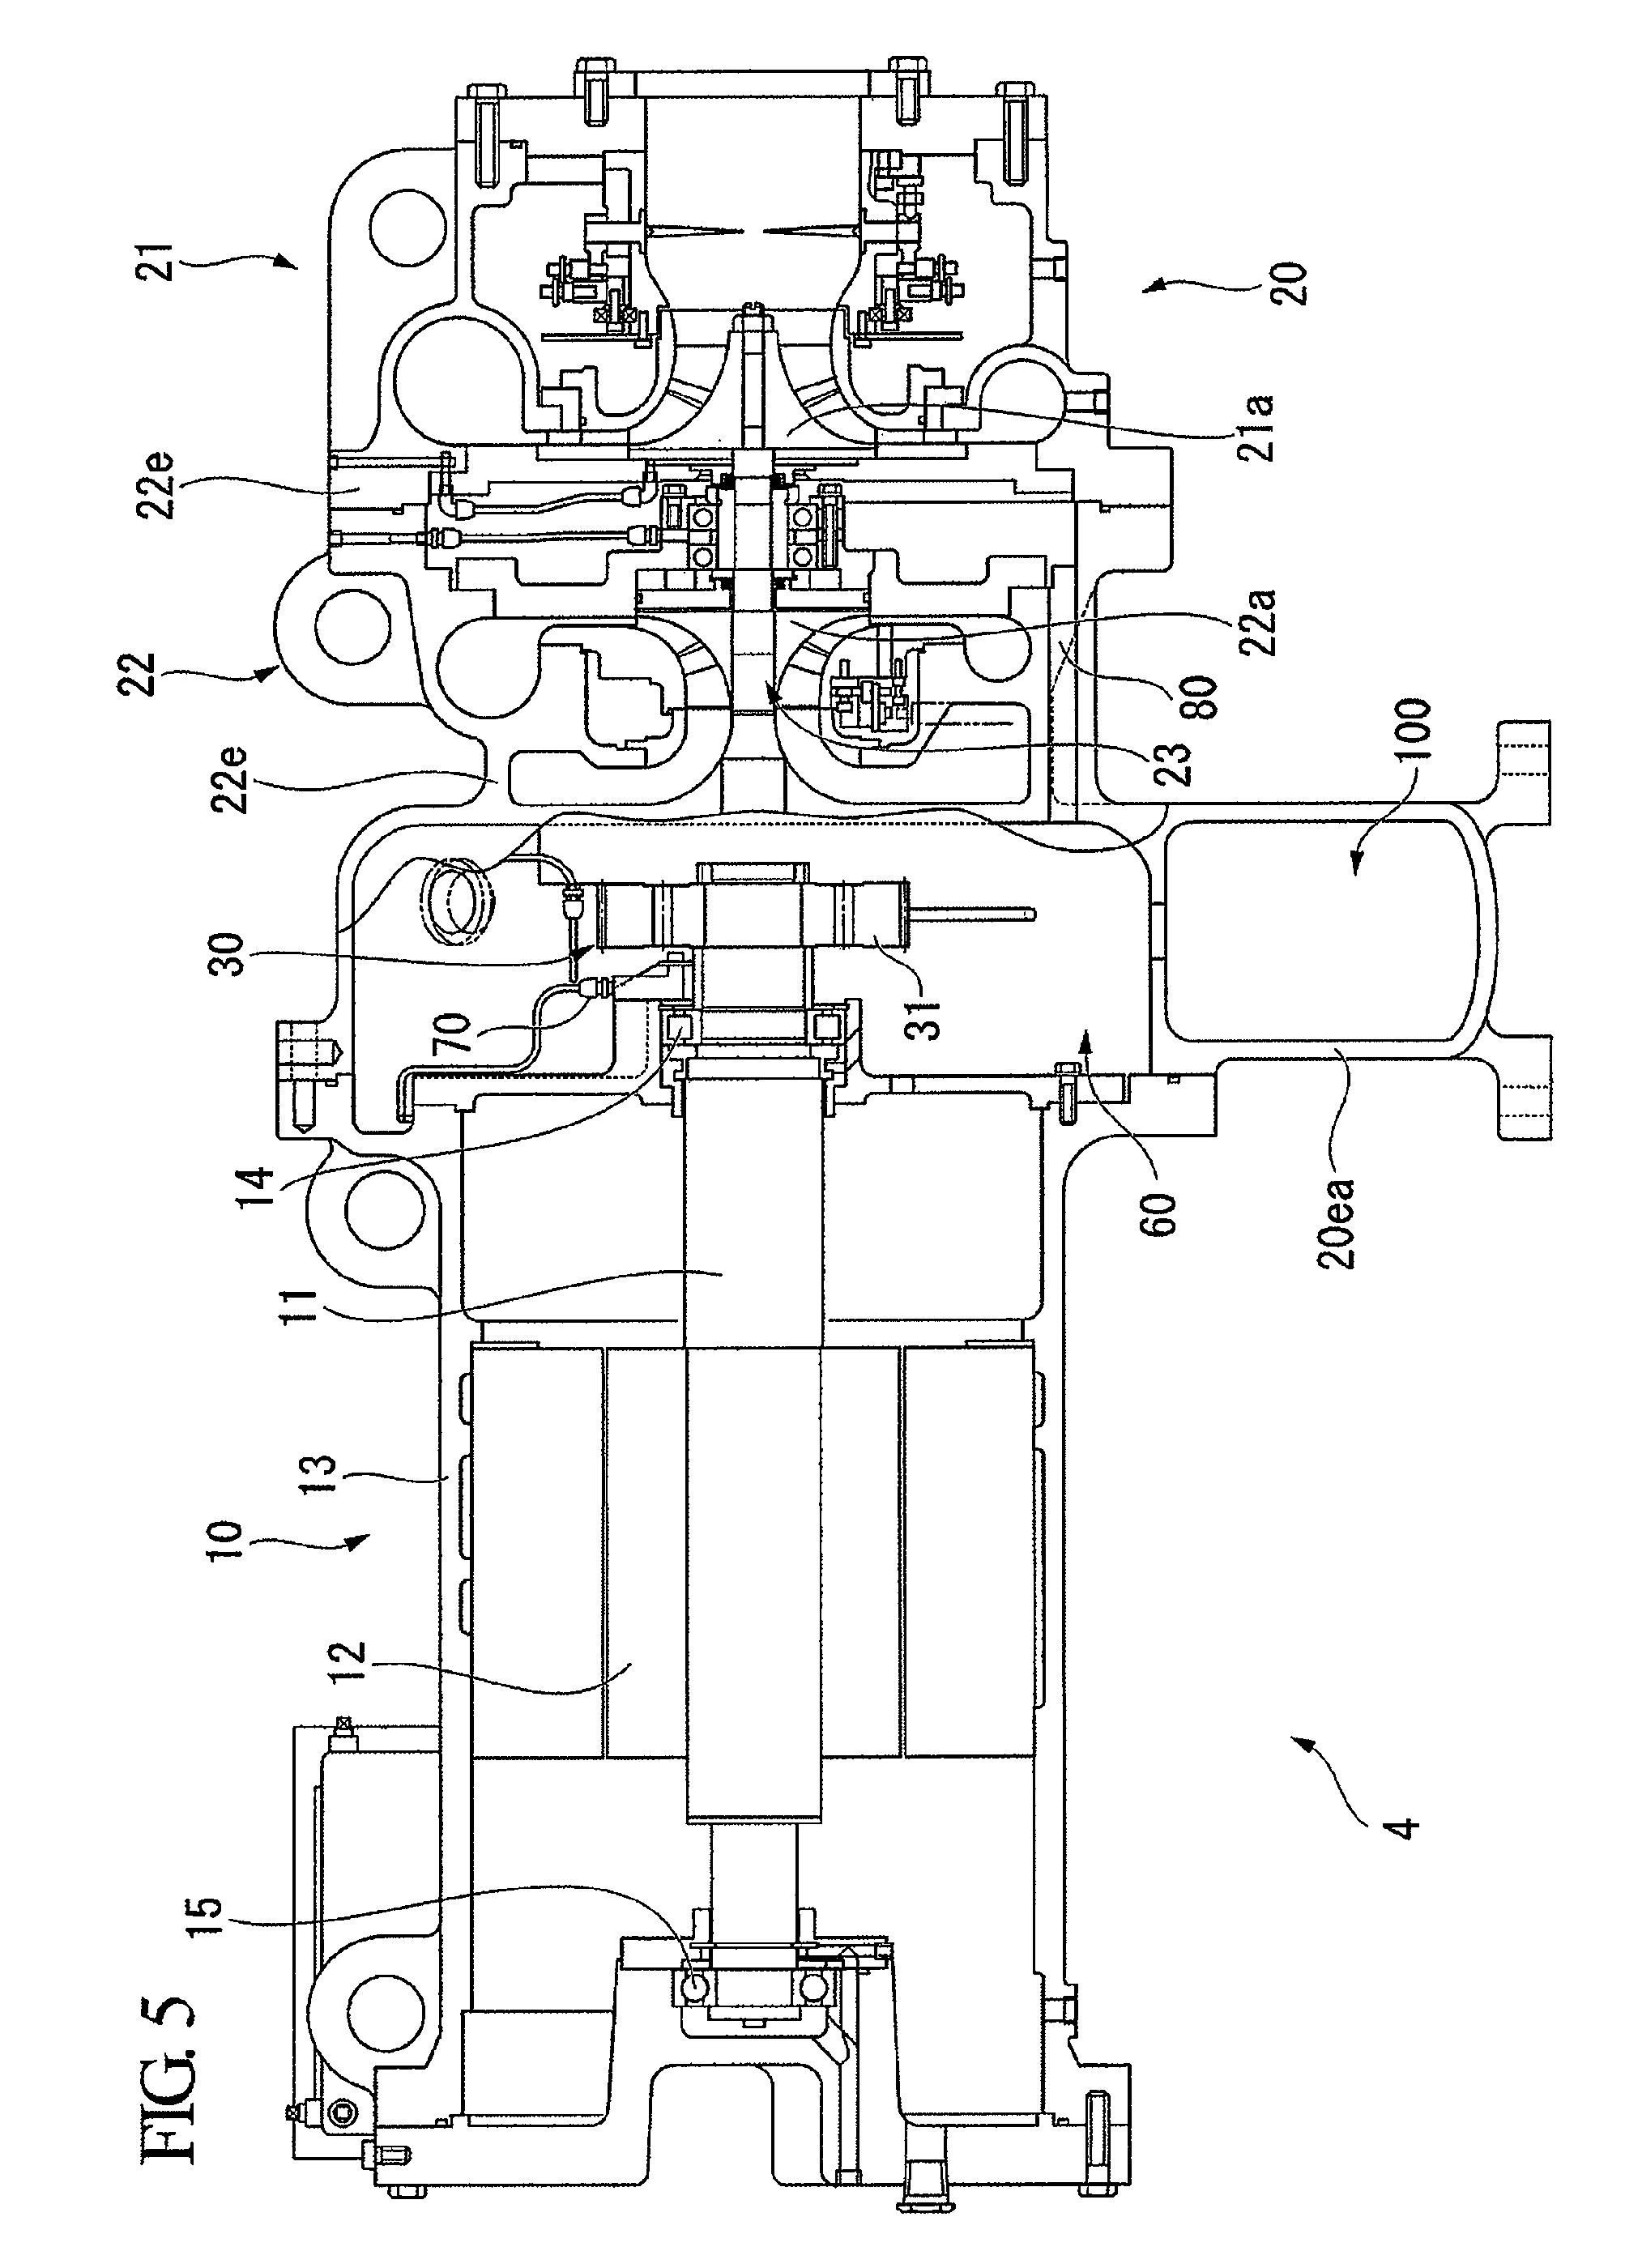 Patent Us8590323 Turbo Compressor And Refrigerator Google Patents On This Turbocharger Diagram You Can See How The Impeller Connects Drawing